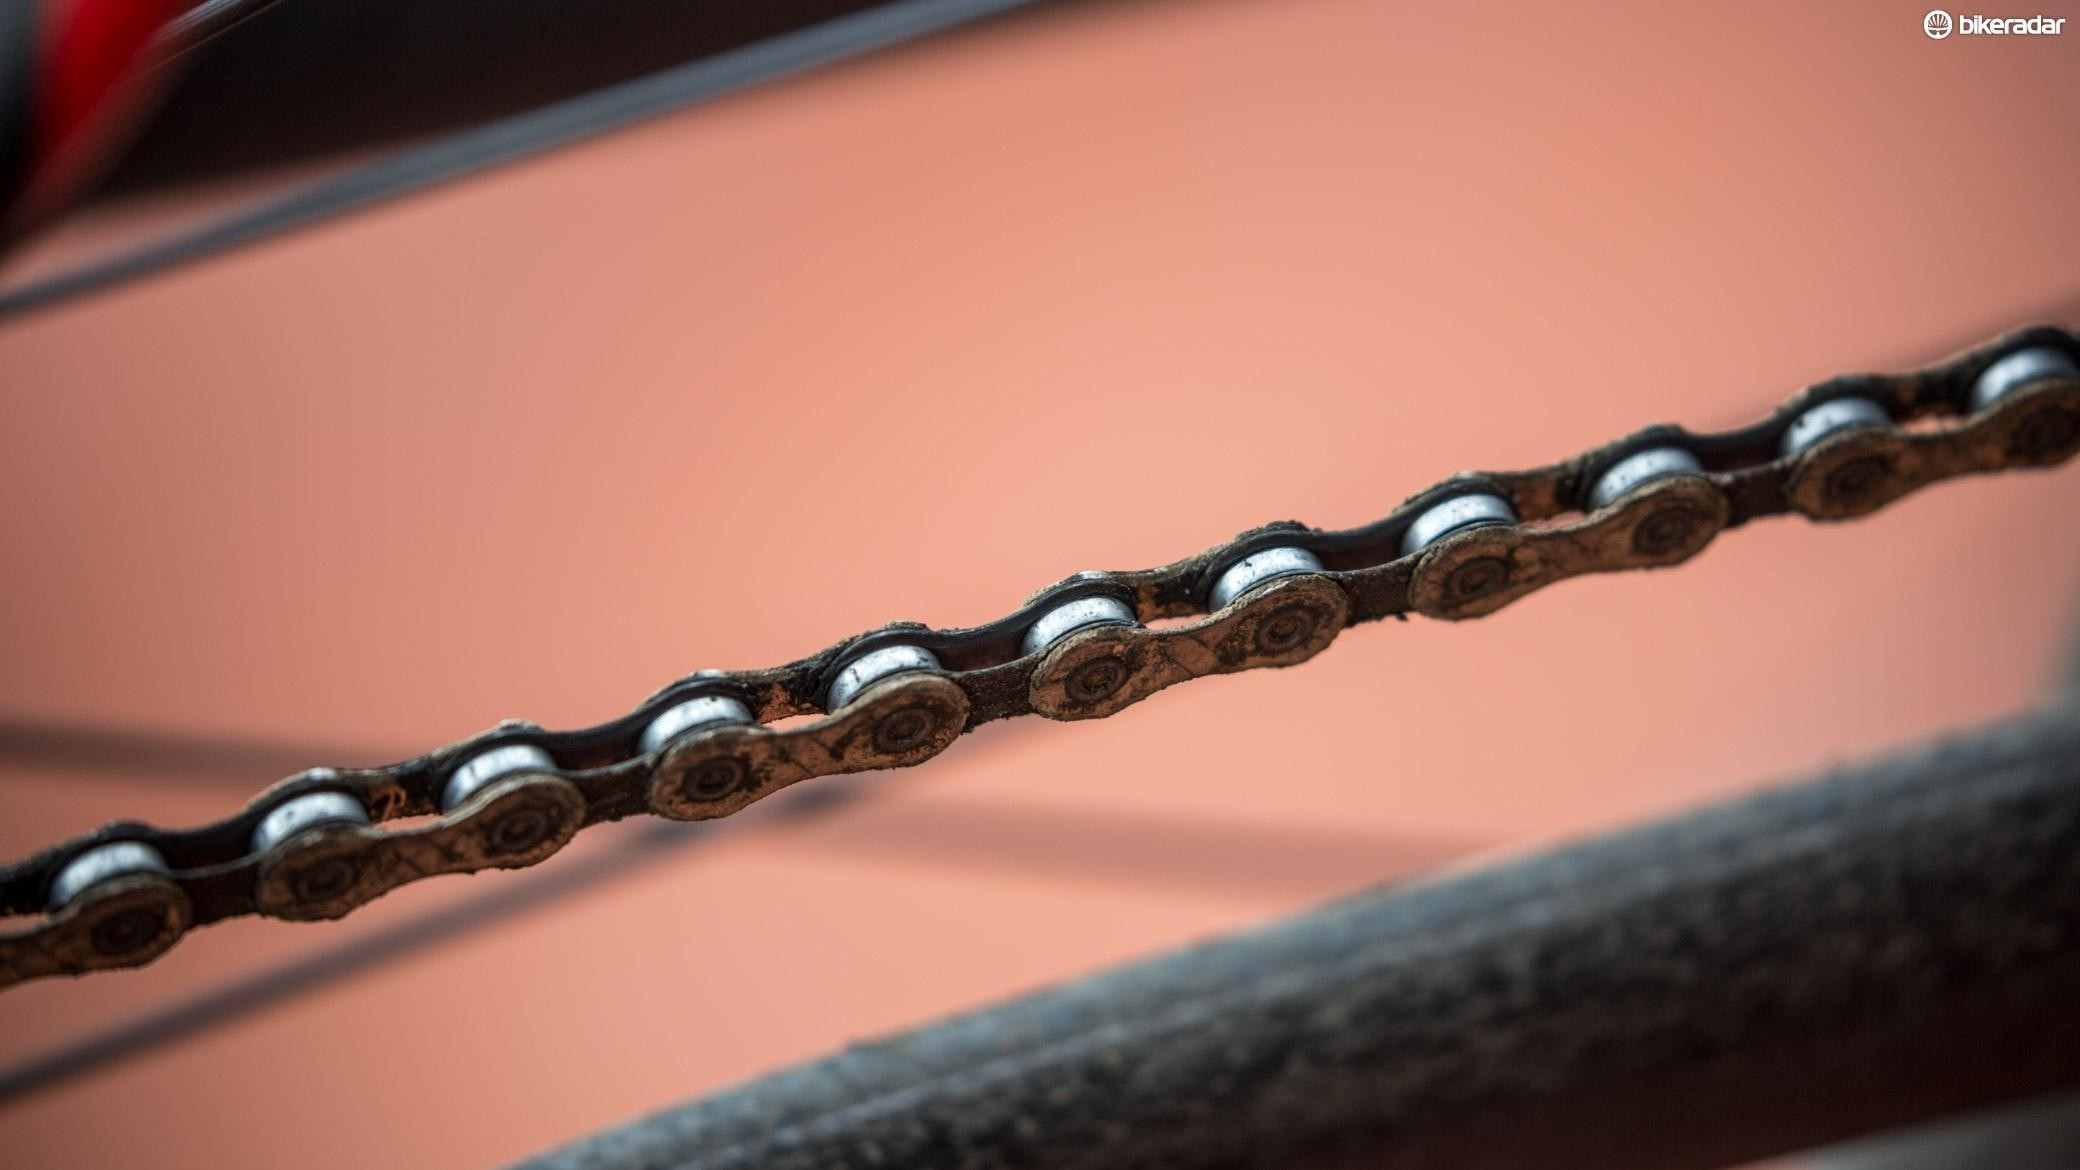 Don't let your chain get this dirty, it will just wear out your other drivetrain components